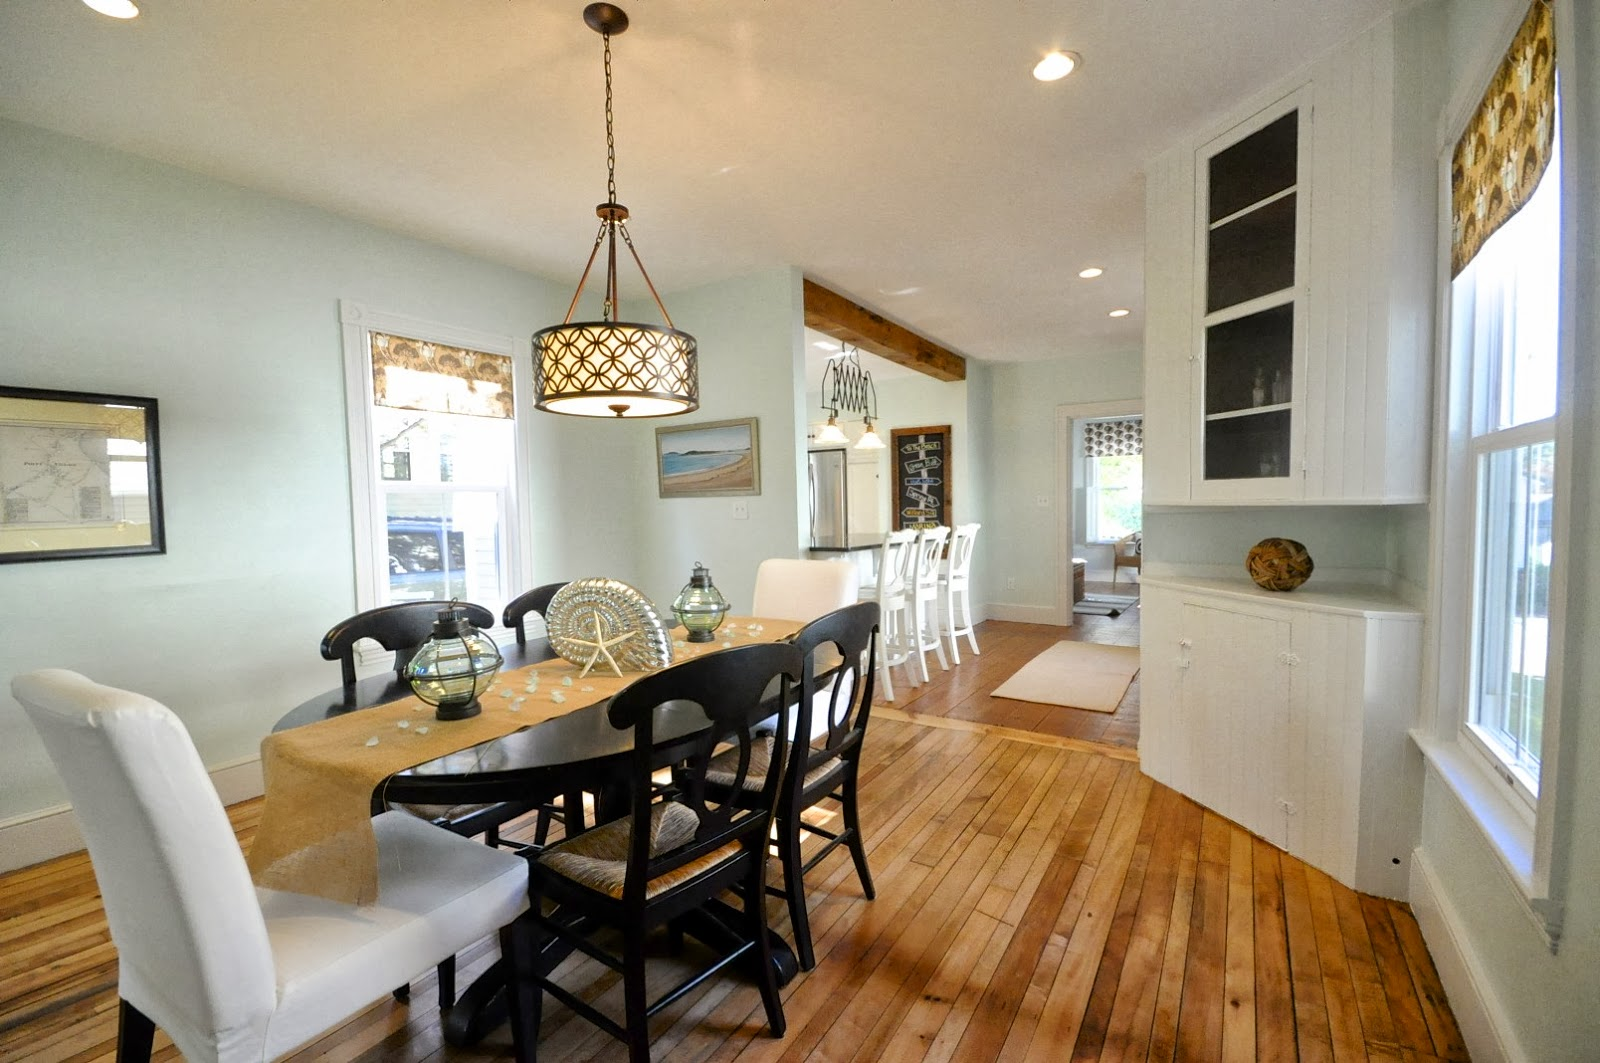 create an open kitchen and dining area sopo cottage featured on remodelaholiccom - Dining Room Remodel